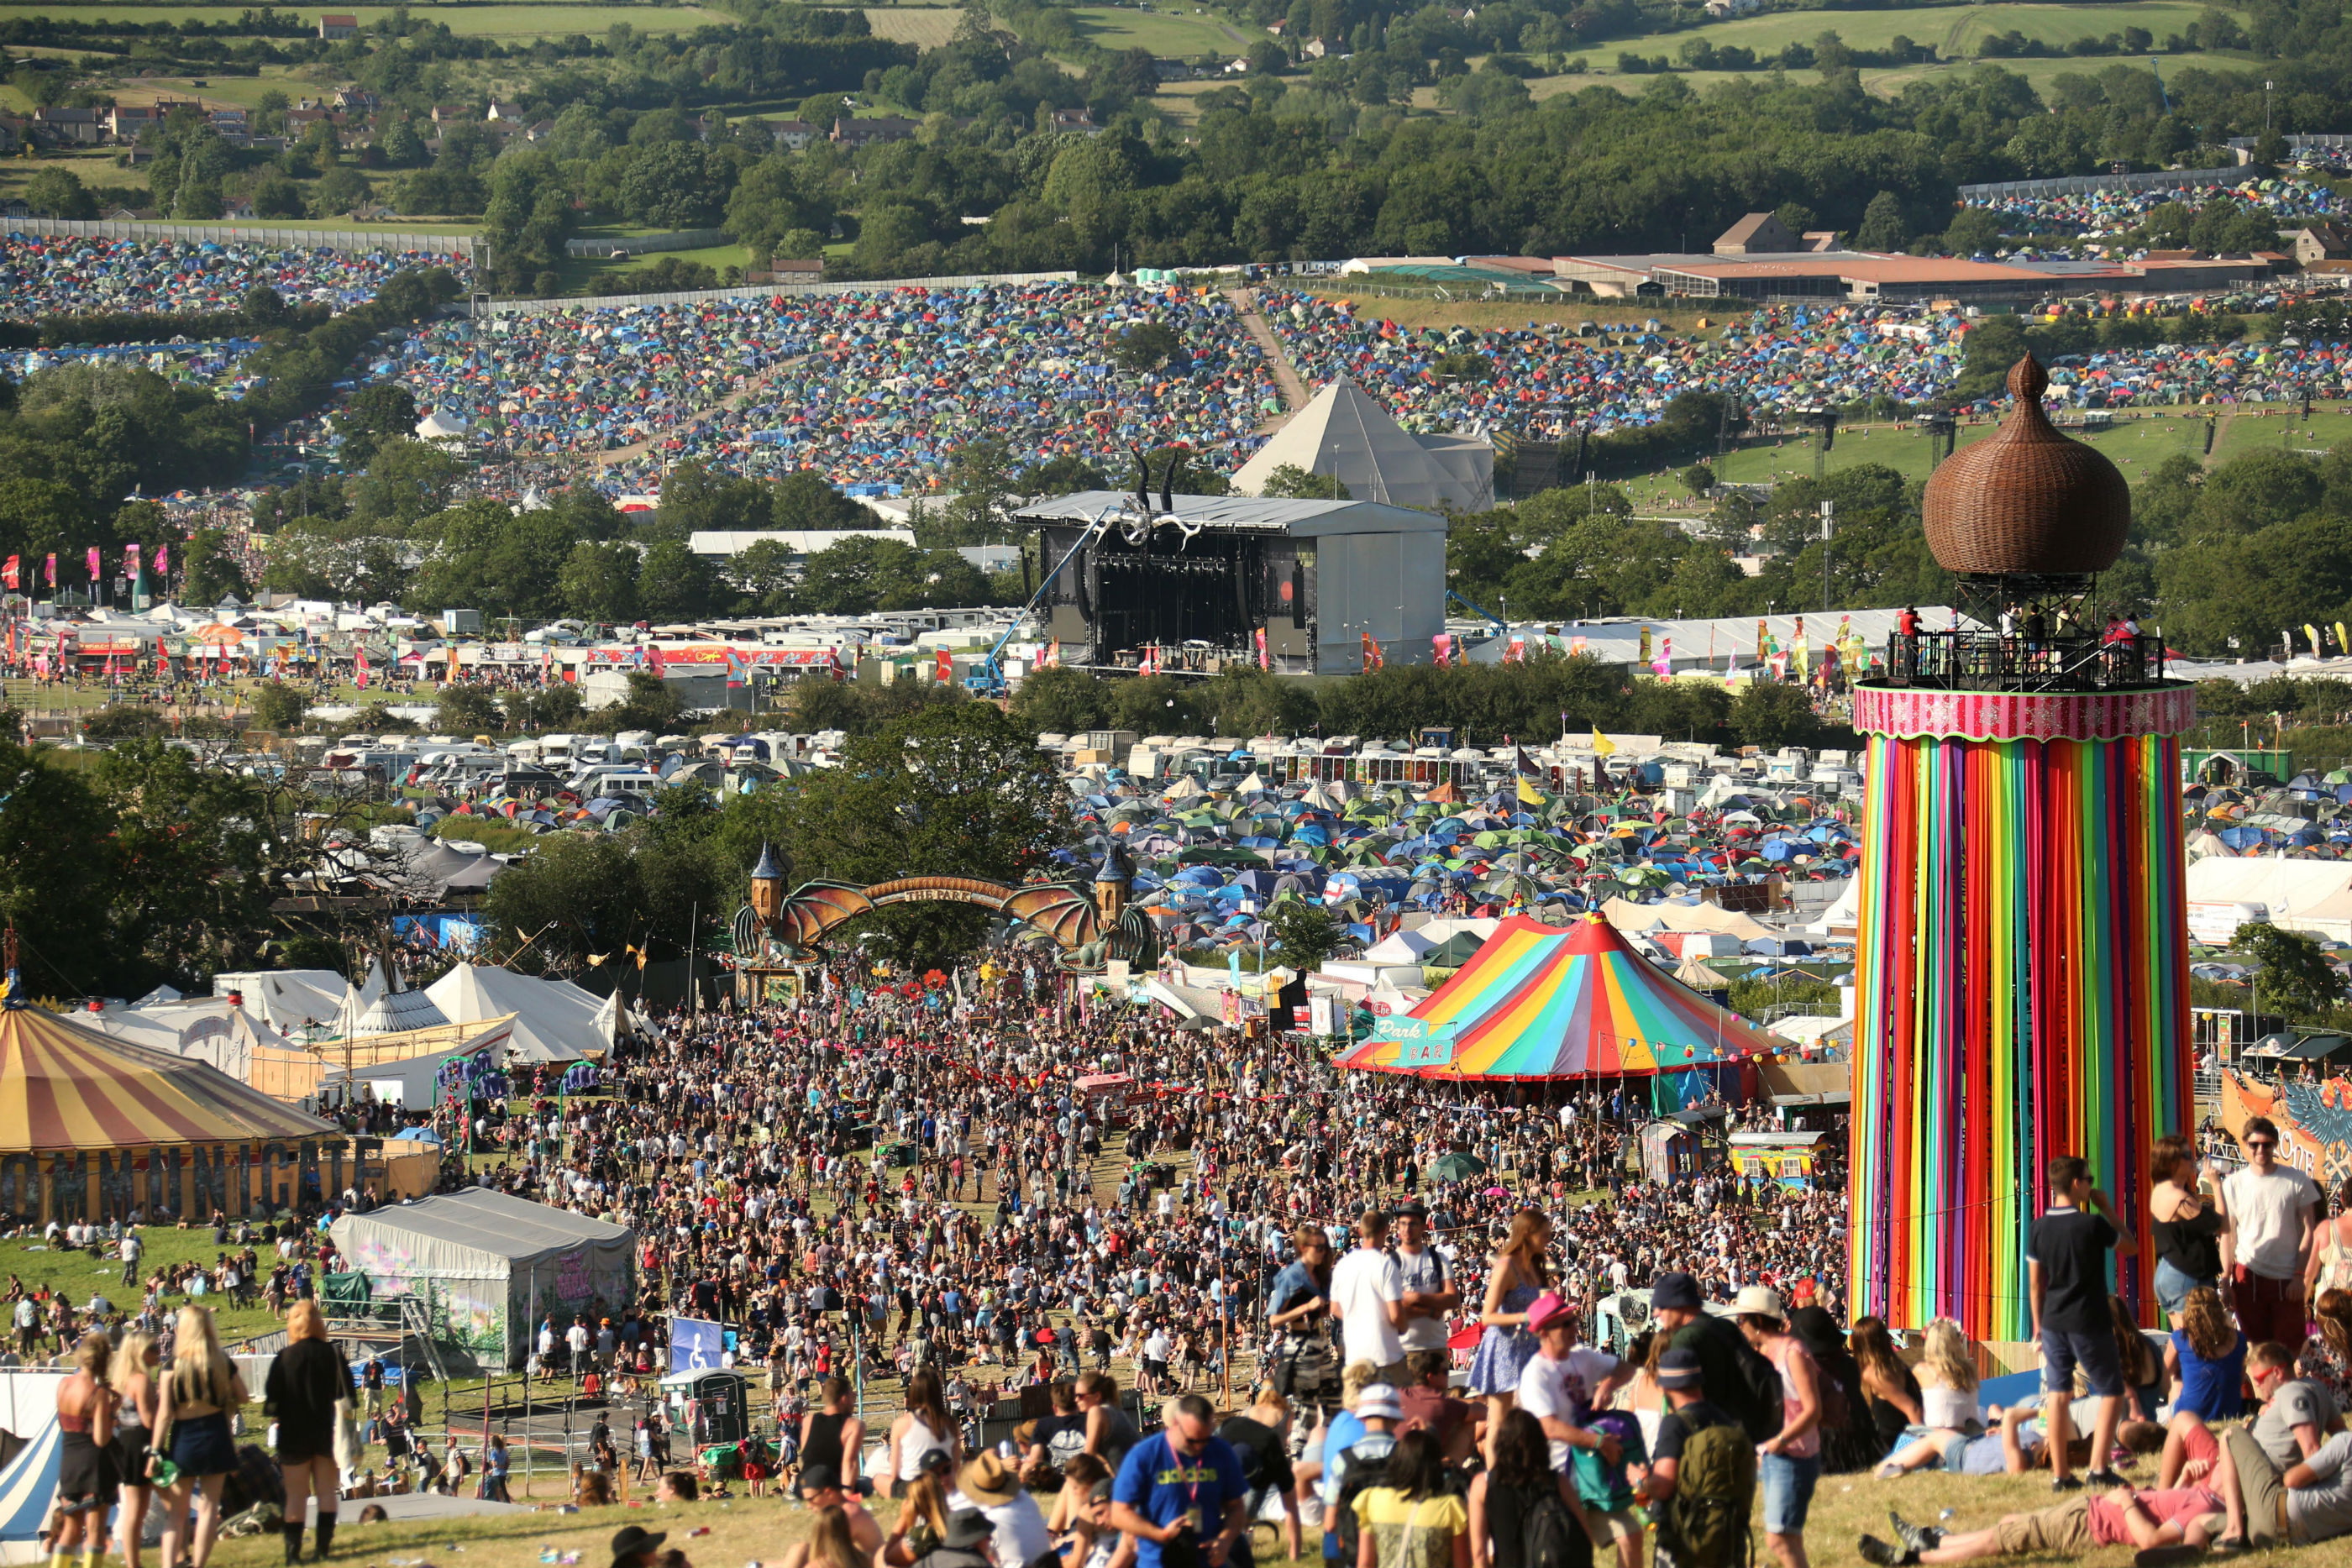 New Reports Say More People Are Going To Music Festivals Than Ever Before